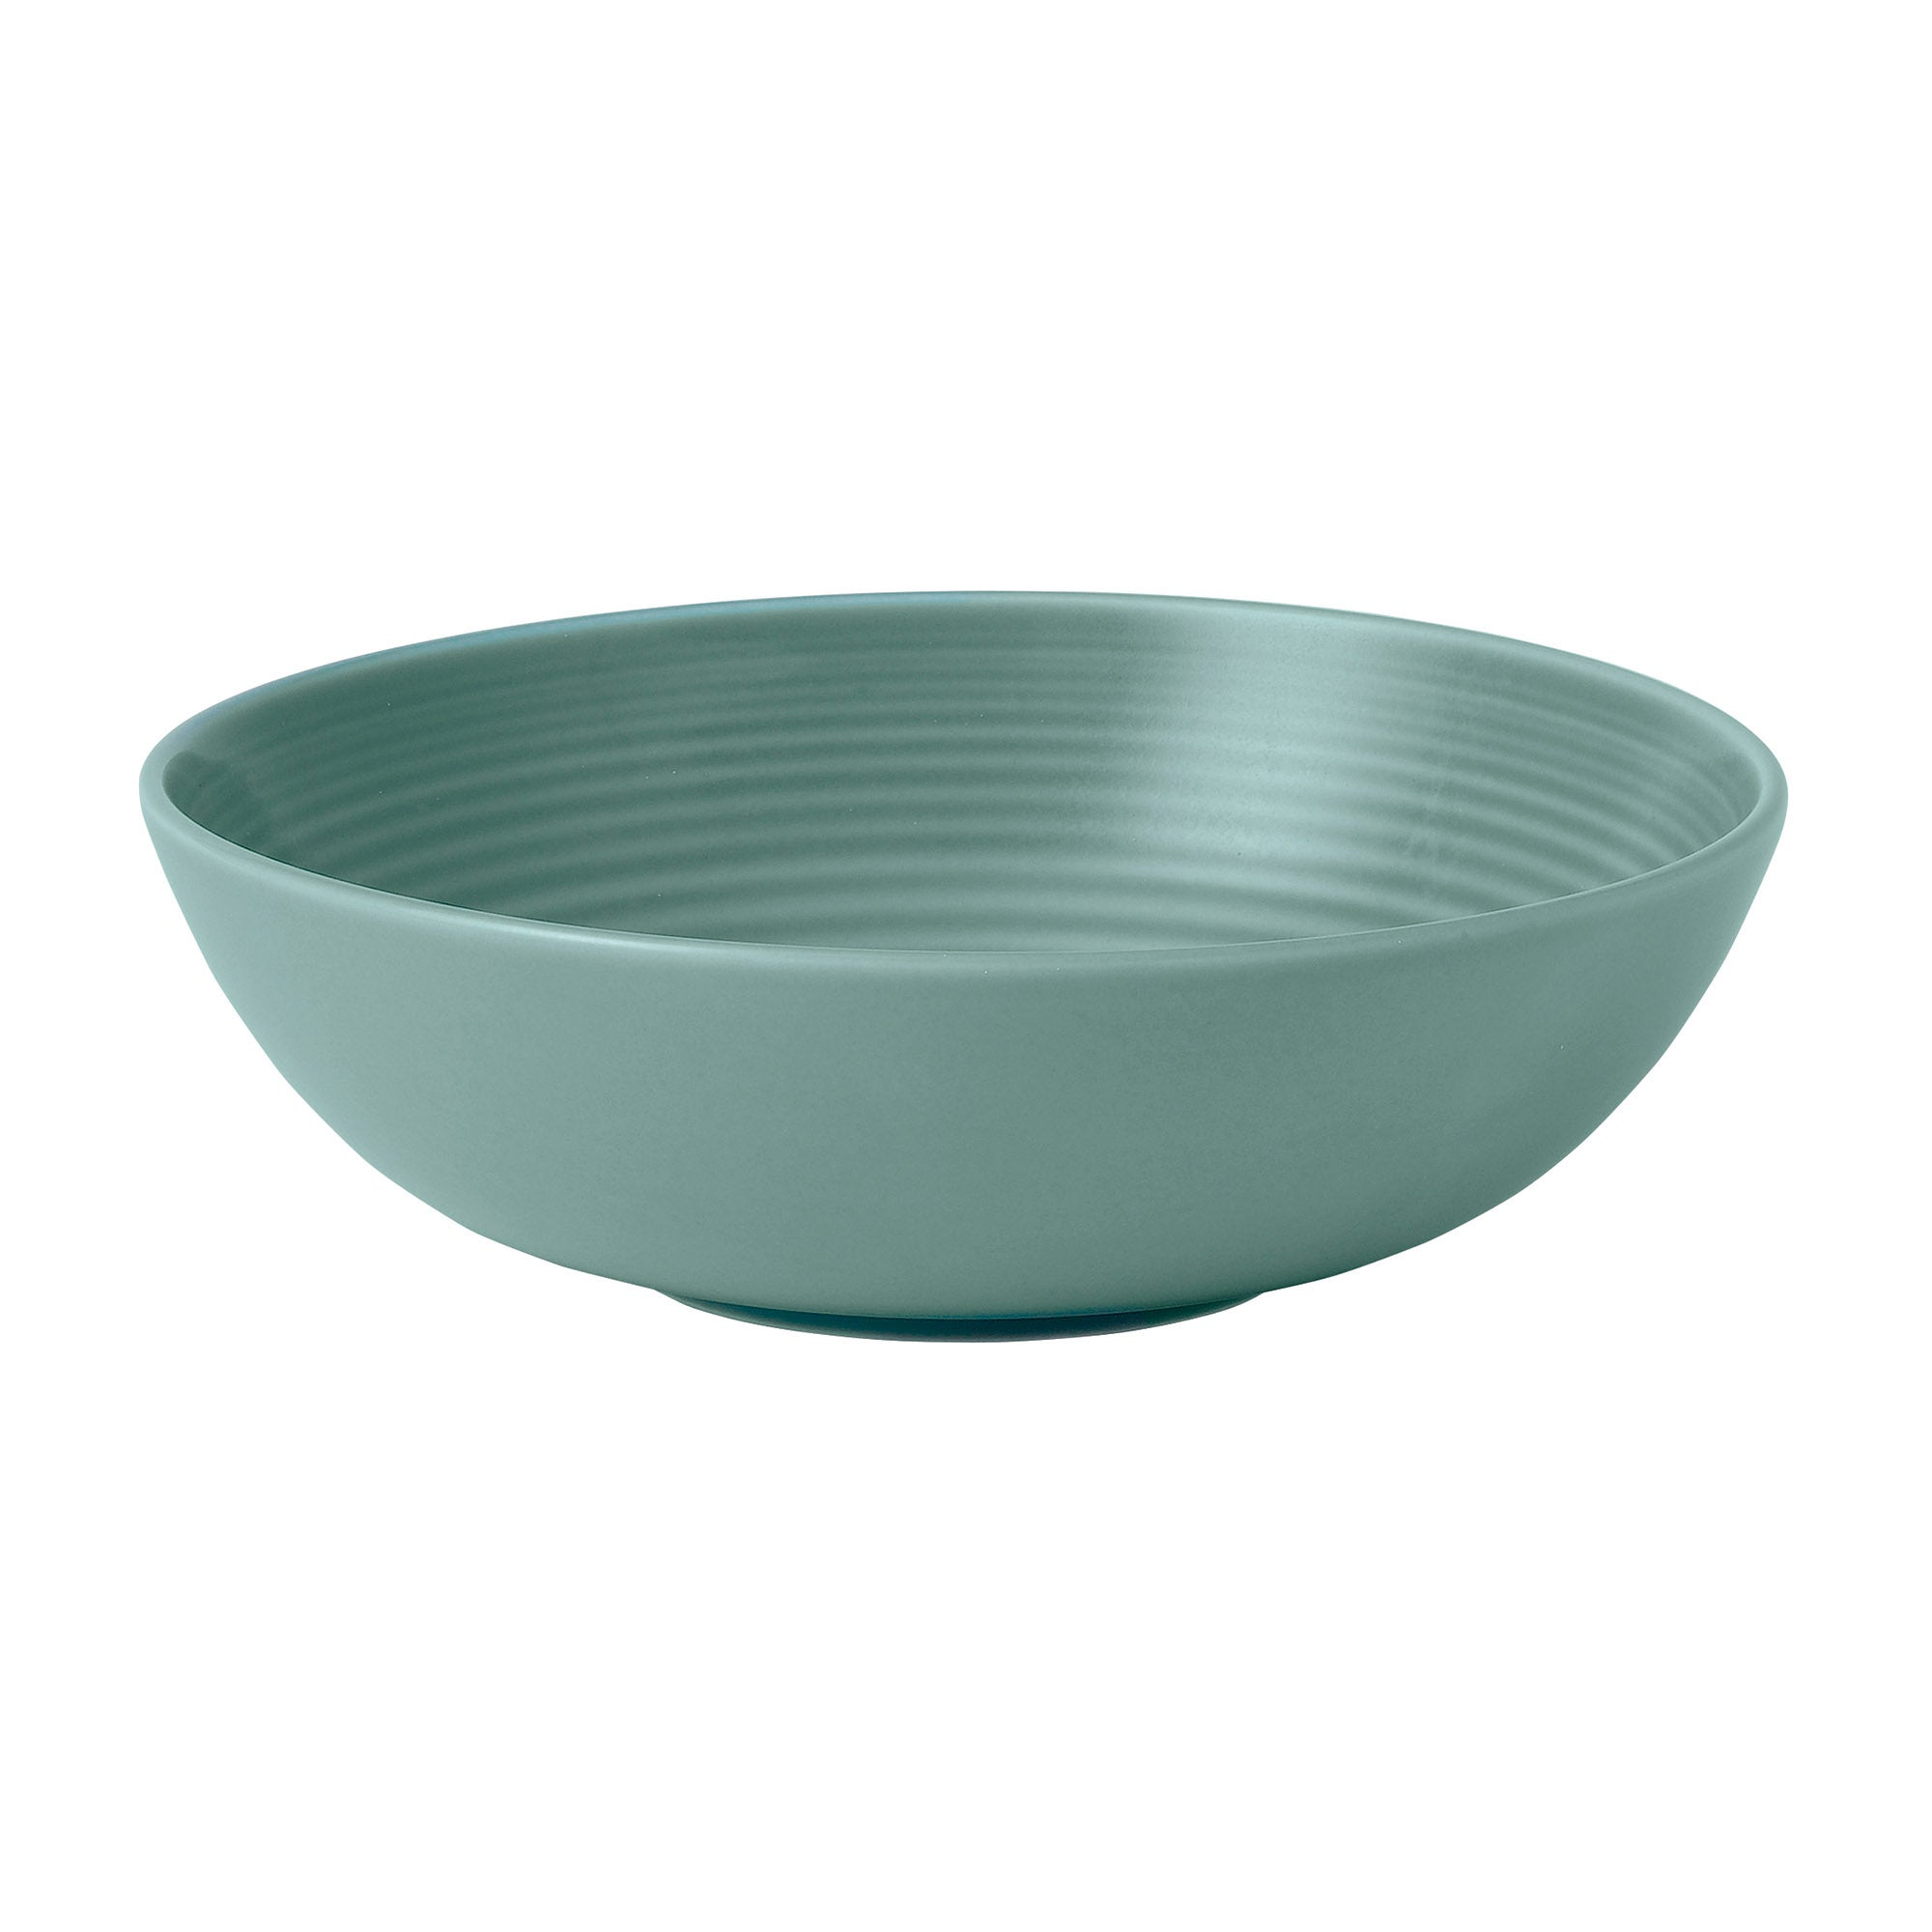 Teal Gordon Ramsay Maze Collection Cereal Bowl